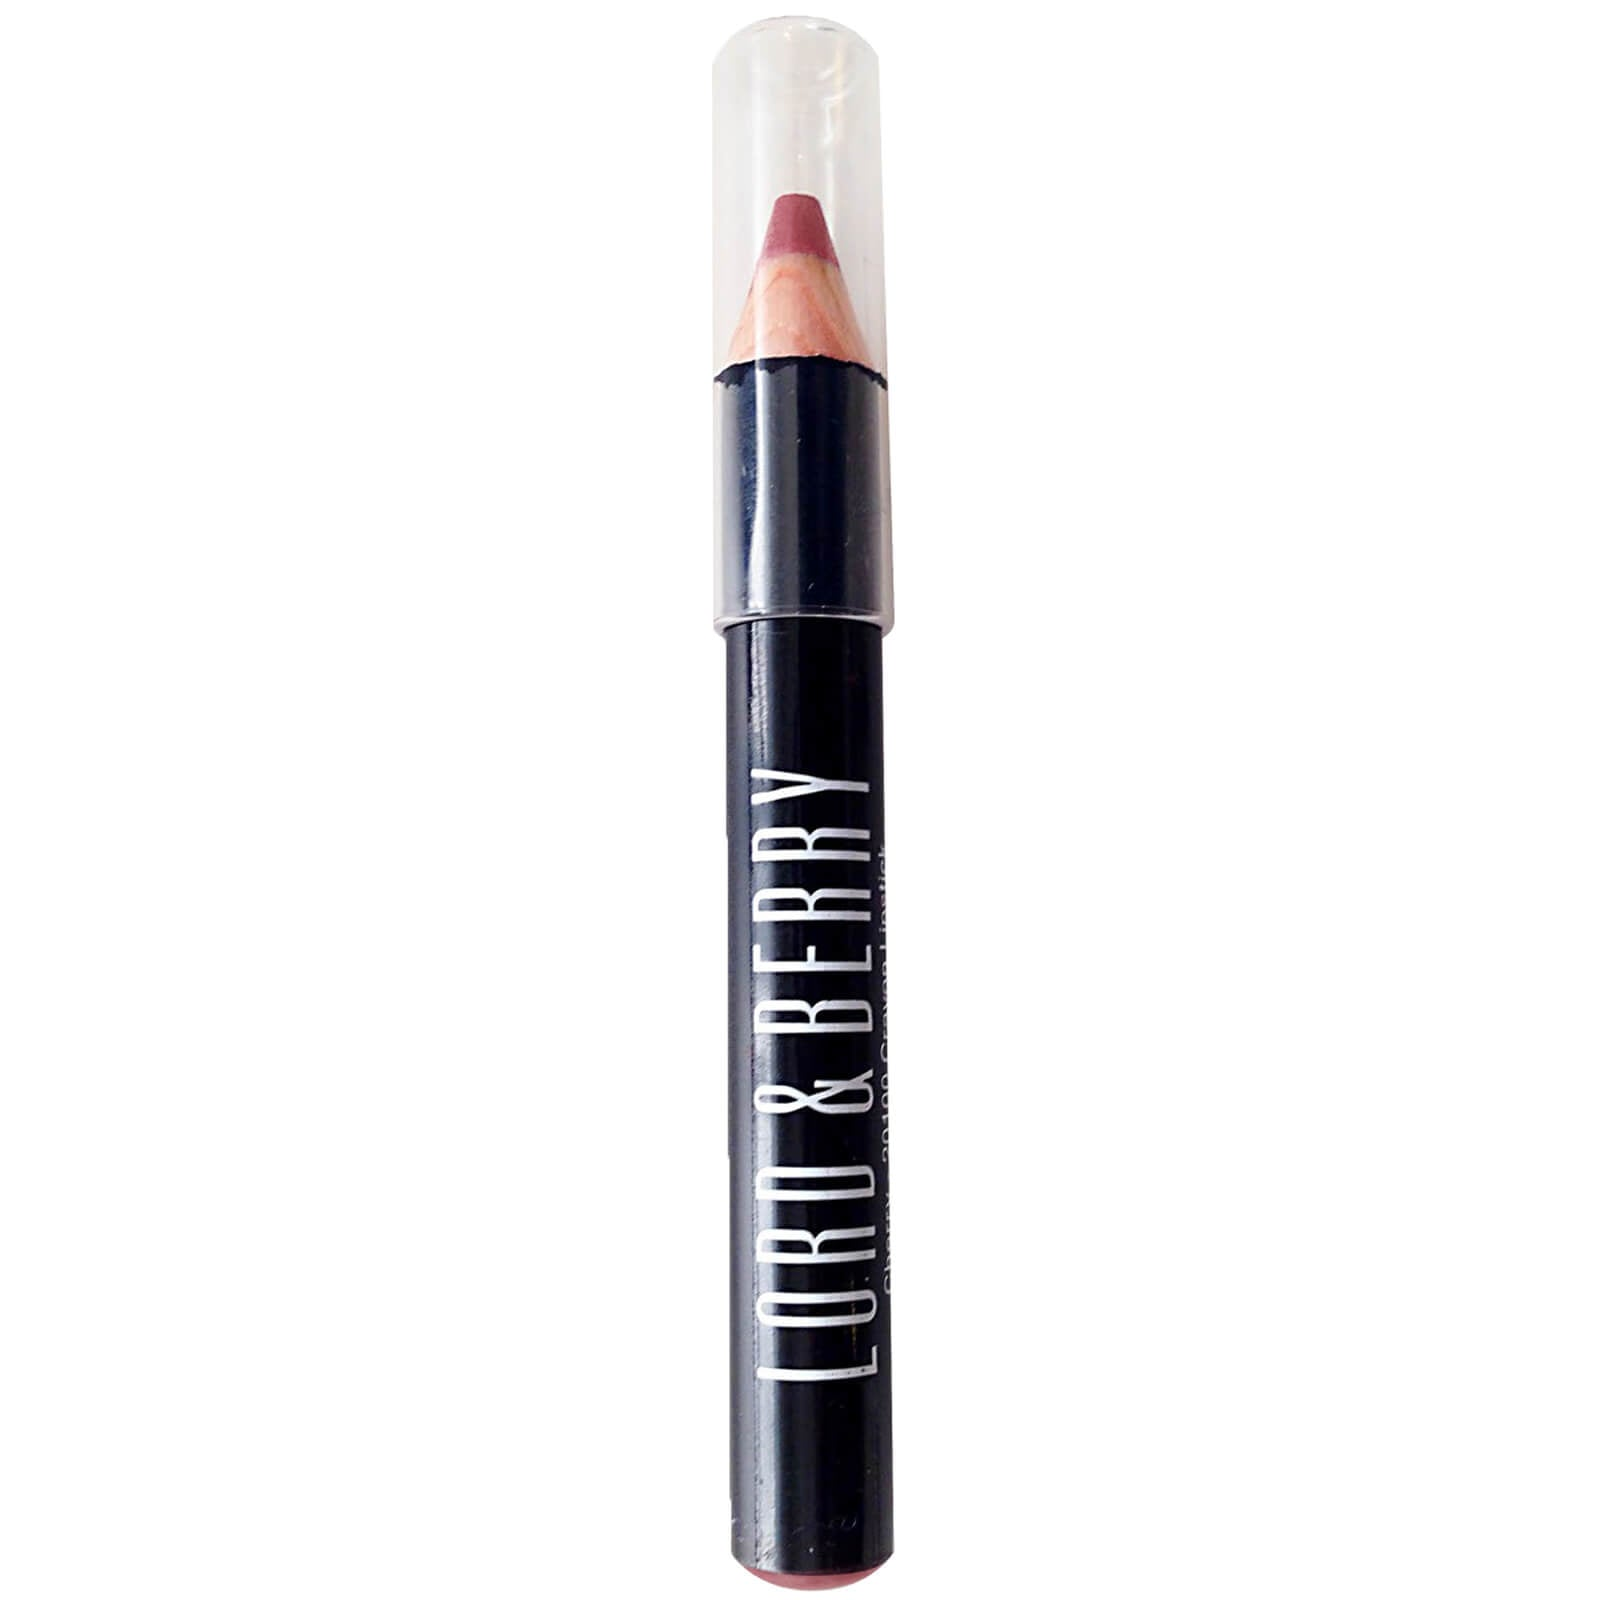 Lord & Berry Maximatte Lipstick Crayon (Various Shades)